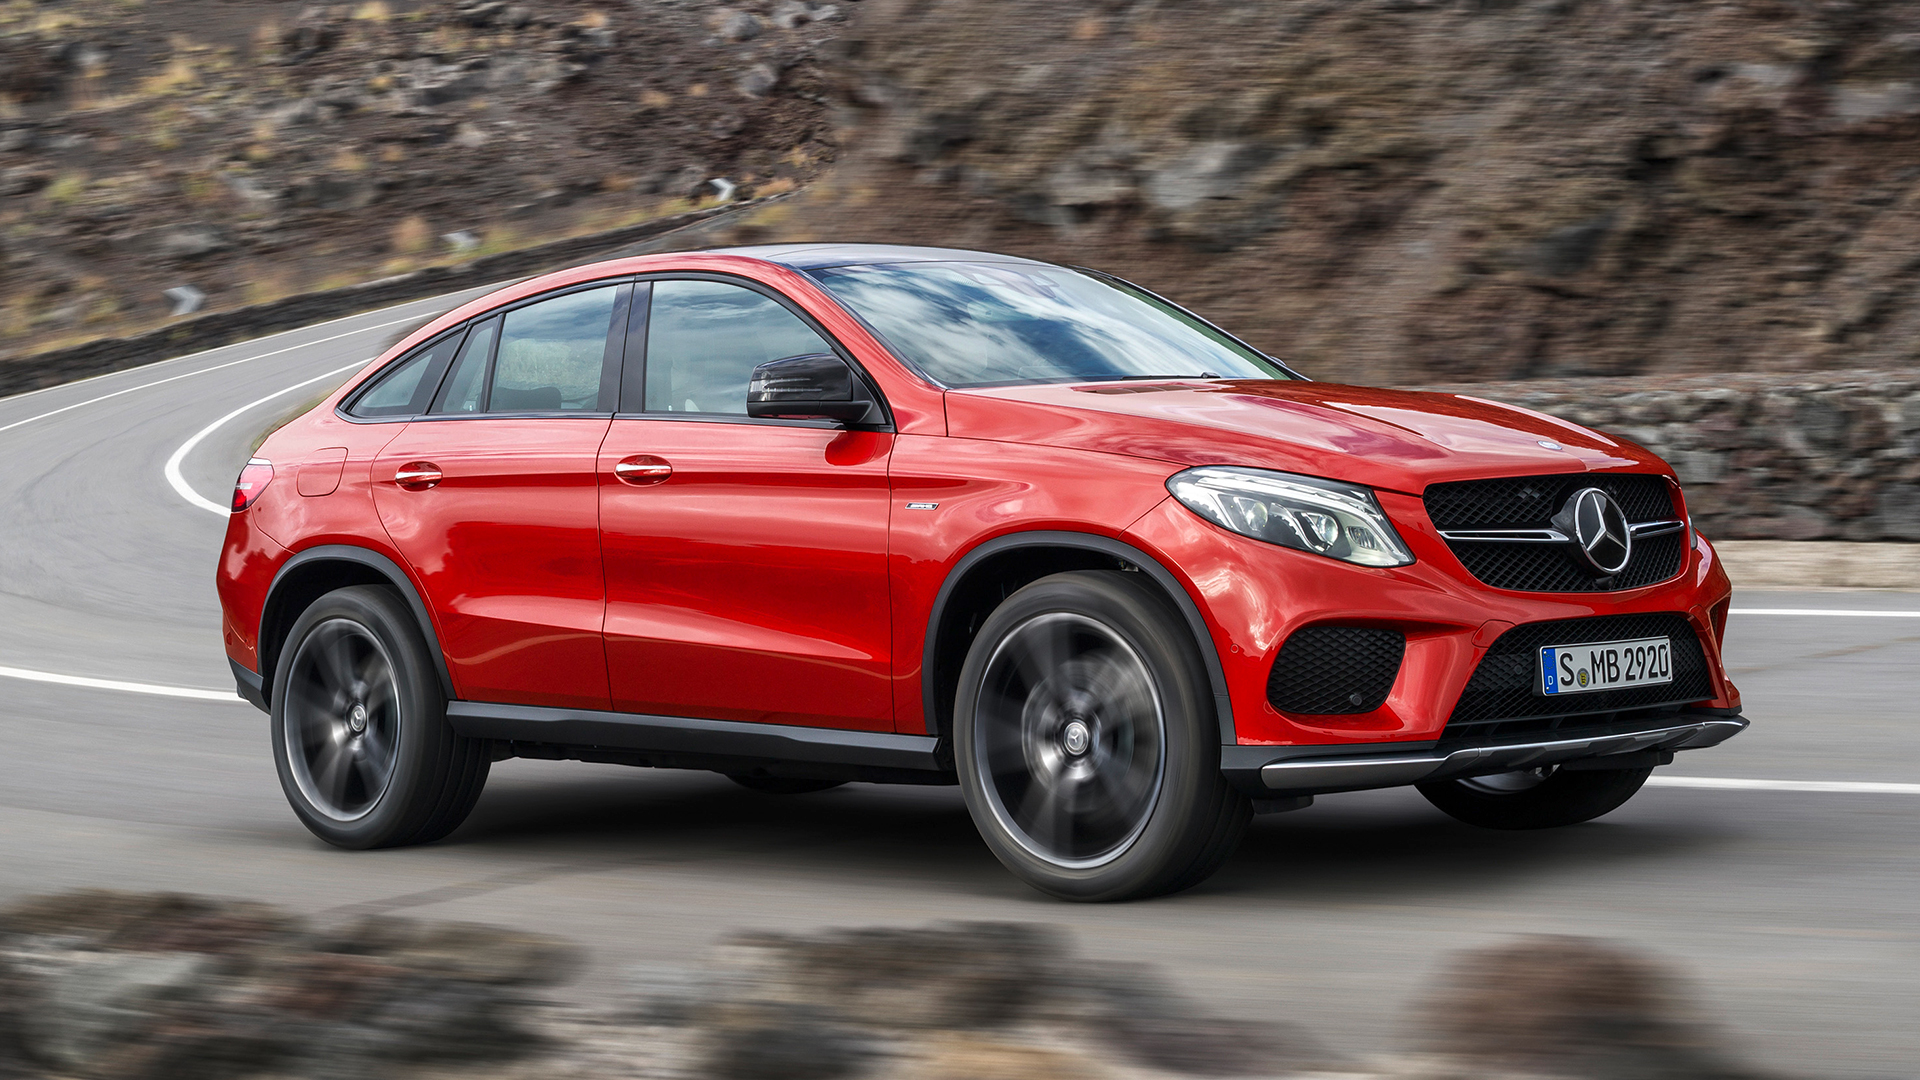 Used Mercedes Benz Gle Class Cars For Sale On Auto Trader Uk